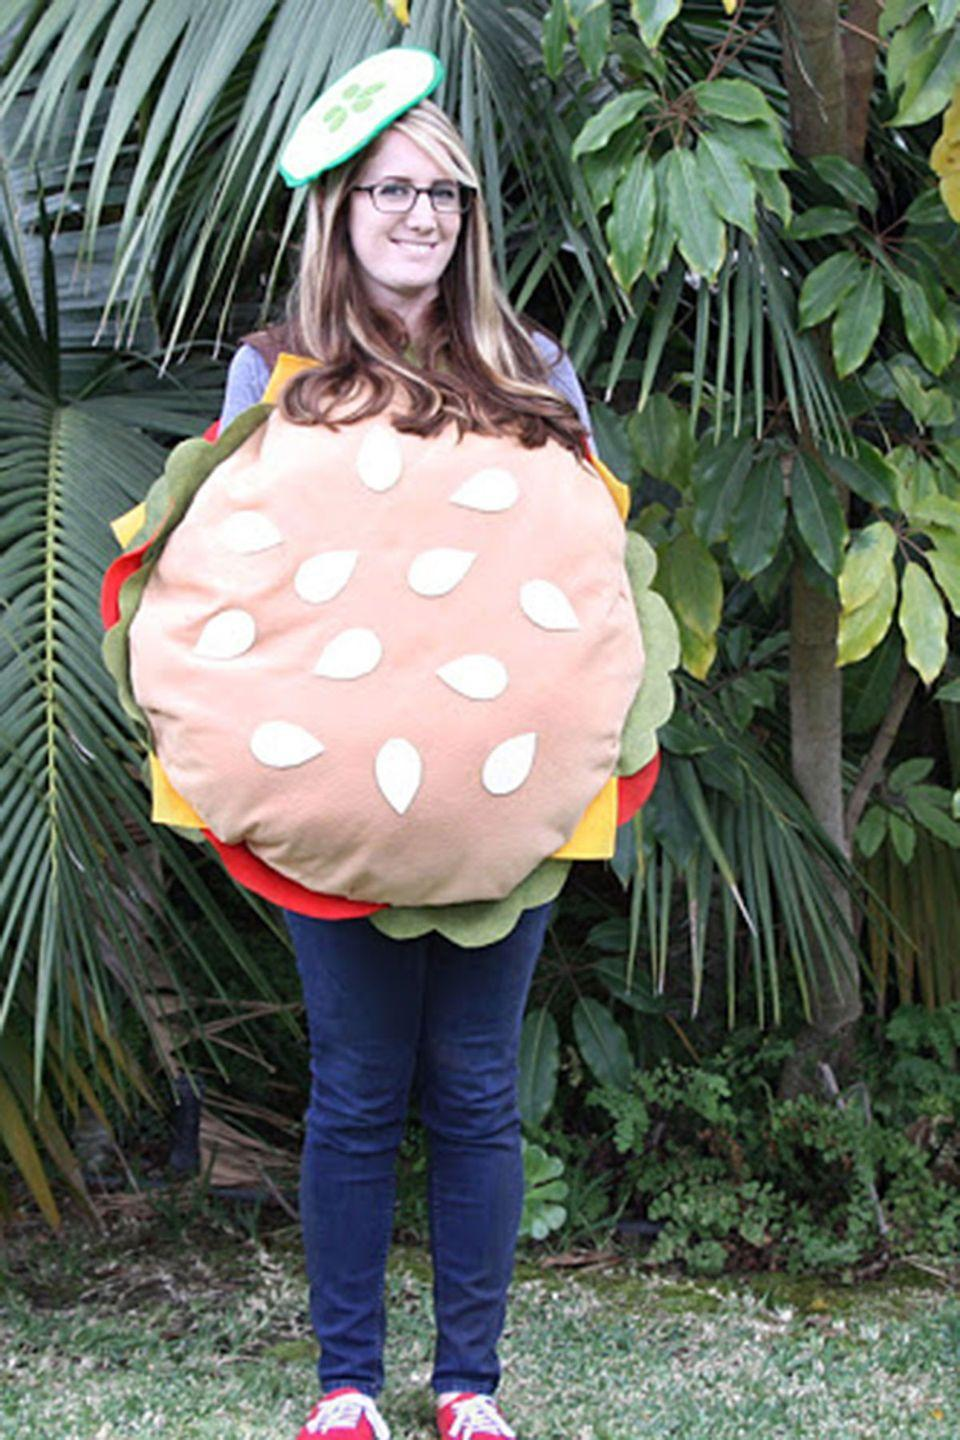 """<p>We're partial to the pickle beret, but you can customize this easy Halloween costume with your toppings of choice. </p><p><strong>Get the tutorial at <a href=""""http://www.pleasenotepaper.com/2013/10/diy-no-sew-burger-costume.html"""" rel=""""nofollow noopener"""" target=""""_blank"""" data-ylk=""""slk:Please Note Paper"""" class=""""link rapid-noclick-resp"""">Please Note Paper</a>.</strong></p><p><strong><a class=""""link rapid-noclick-resp"""" href=""""https://www.amazon.com/Nu-Source-Inc-Premium-Felt-1094-72/dp/B004E58GQ2/?tag=syn-yahoo-20&ascsubtag=%5Bartid%7C10050.g.4571%5Bsrc%7Cyahoo-us"""" rel=""""nofollow noopener"""" target=""""_blank"""" data-ylk=""""slk:SHOP TAN FELT"""">SHOP TAN FELT</a></strong></p>"""